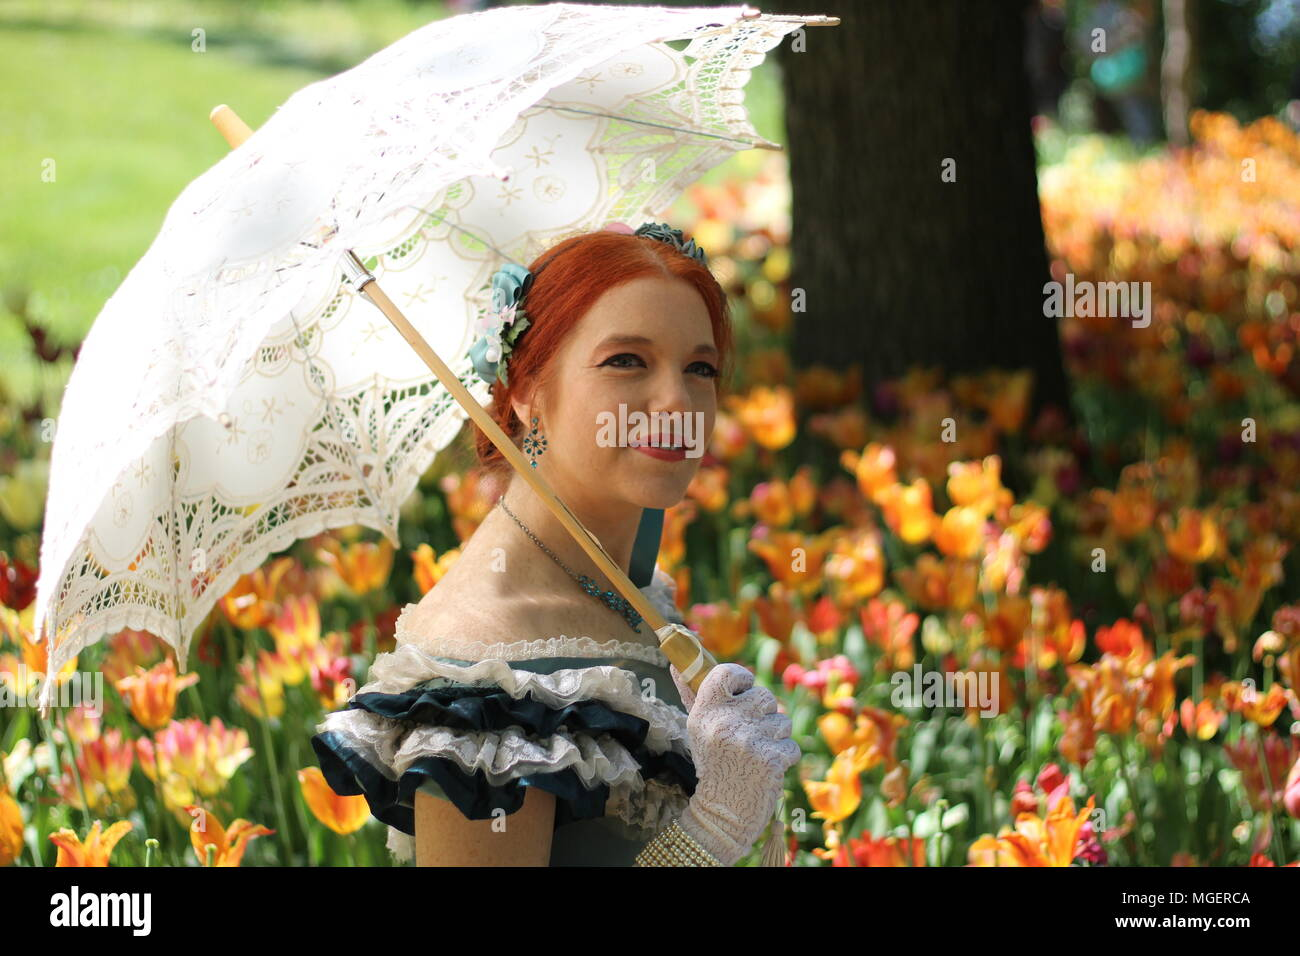 A woman with red hair and a white umbrella to protect herself from the sun relaxes in a field of red and yellow tulips Stock Photo